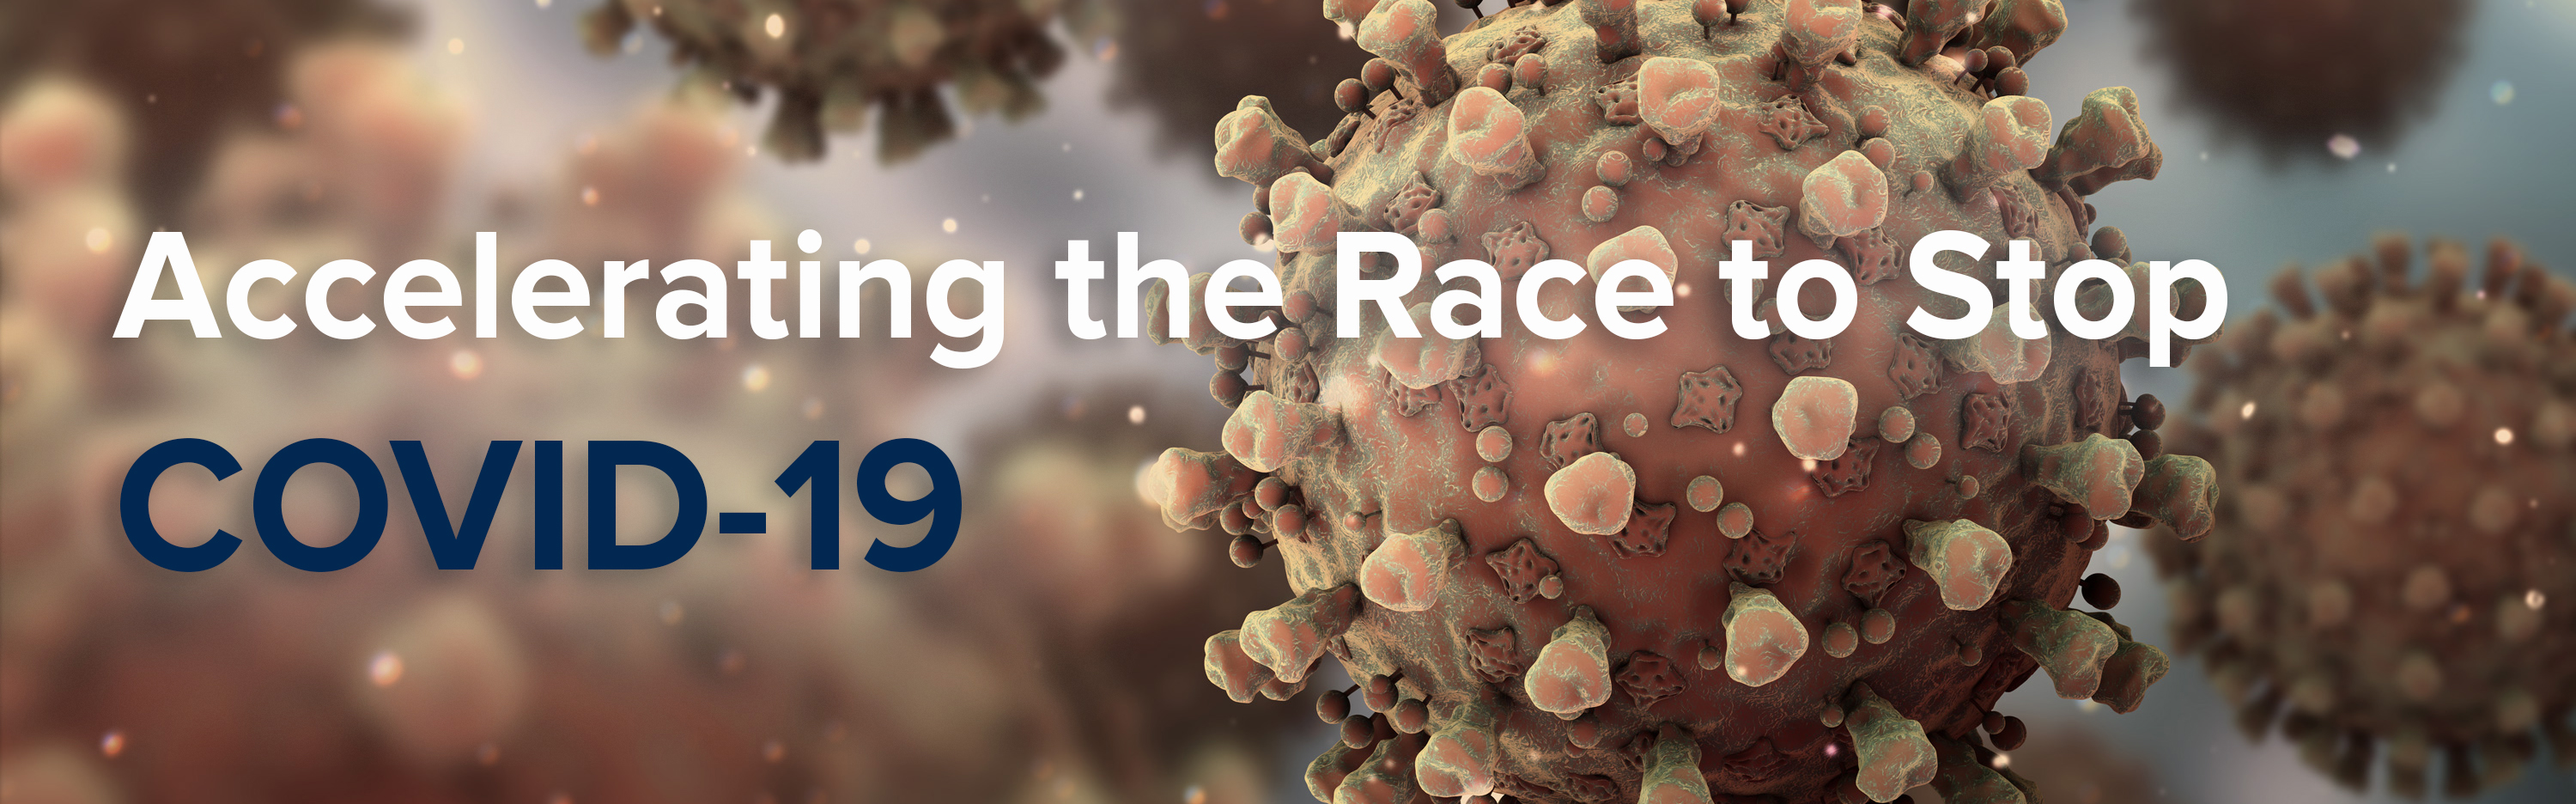 Accelerating the Race to Stop COVID-19